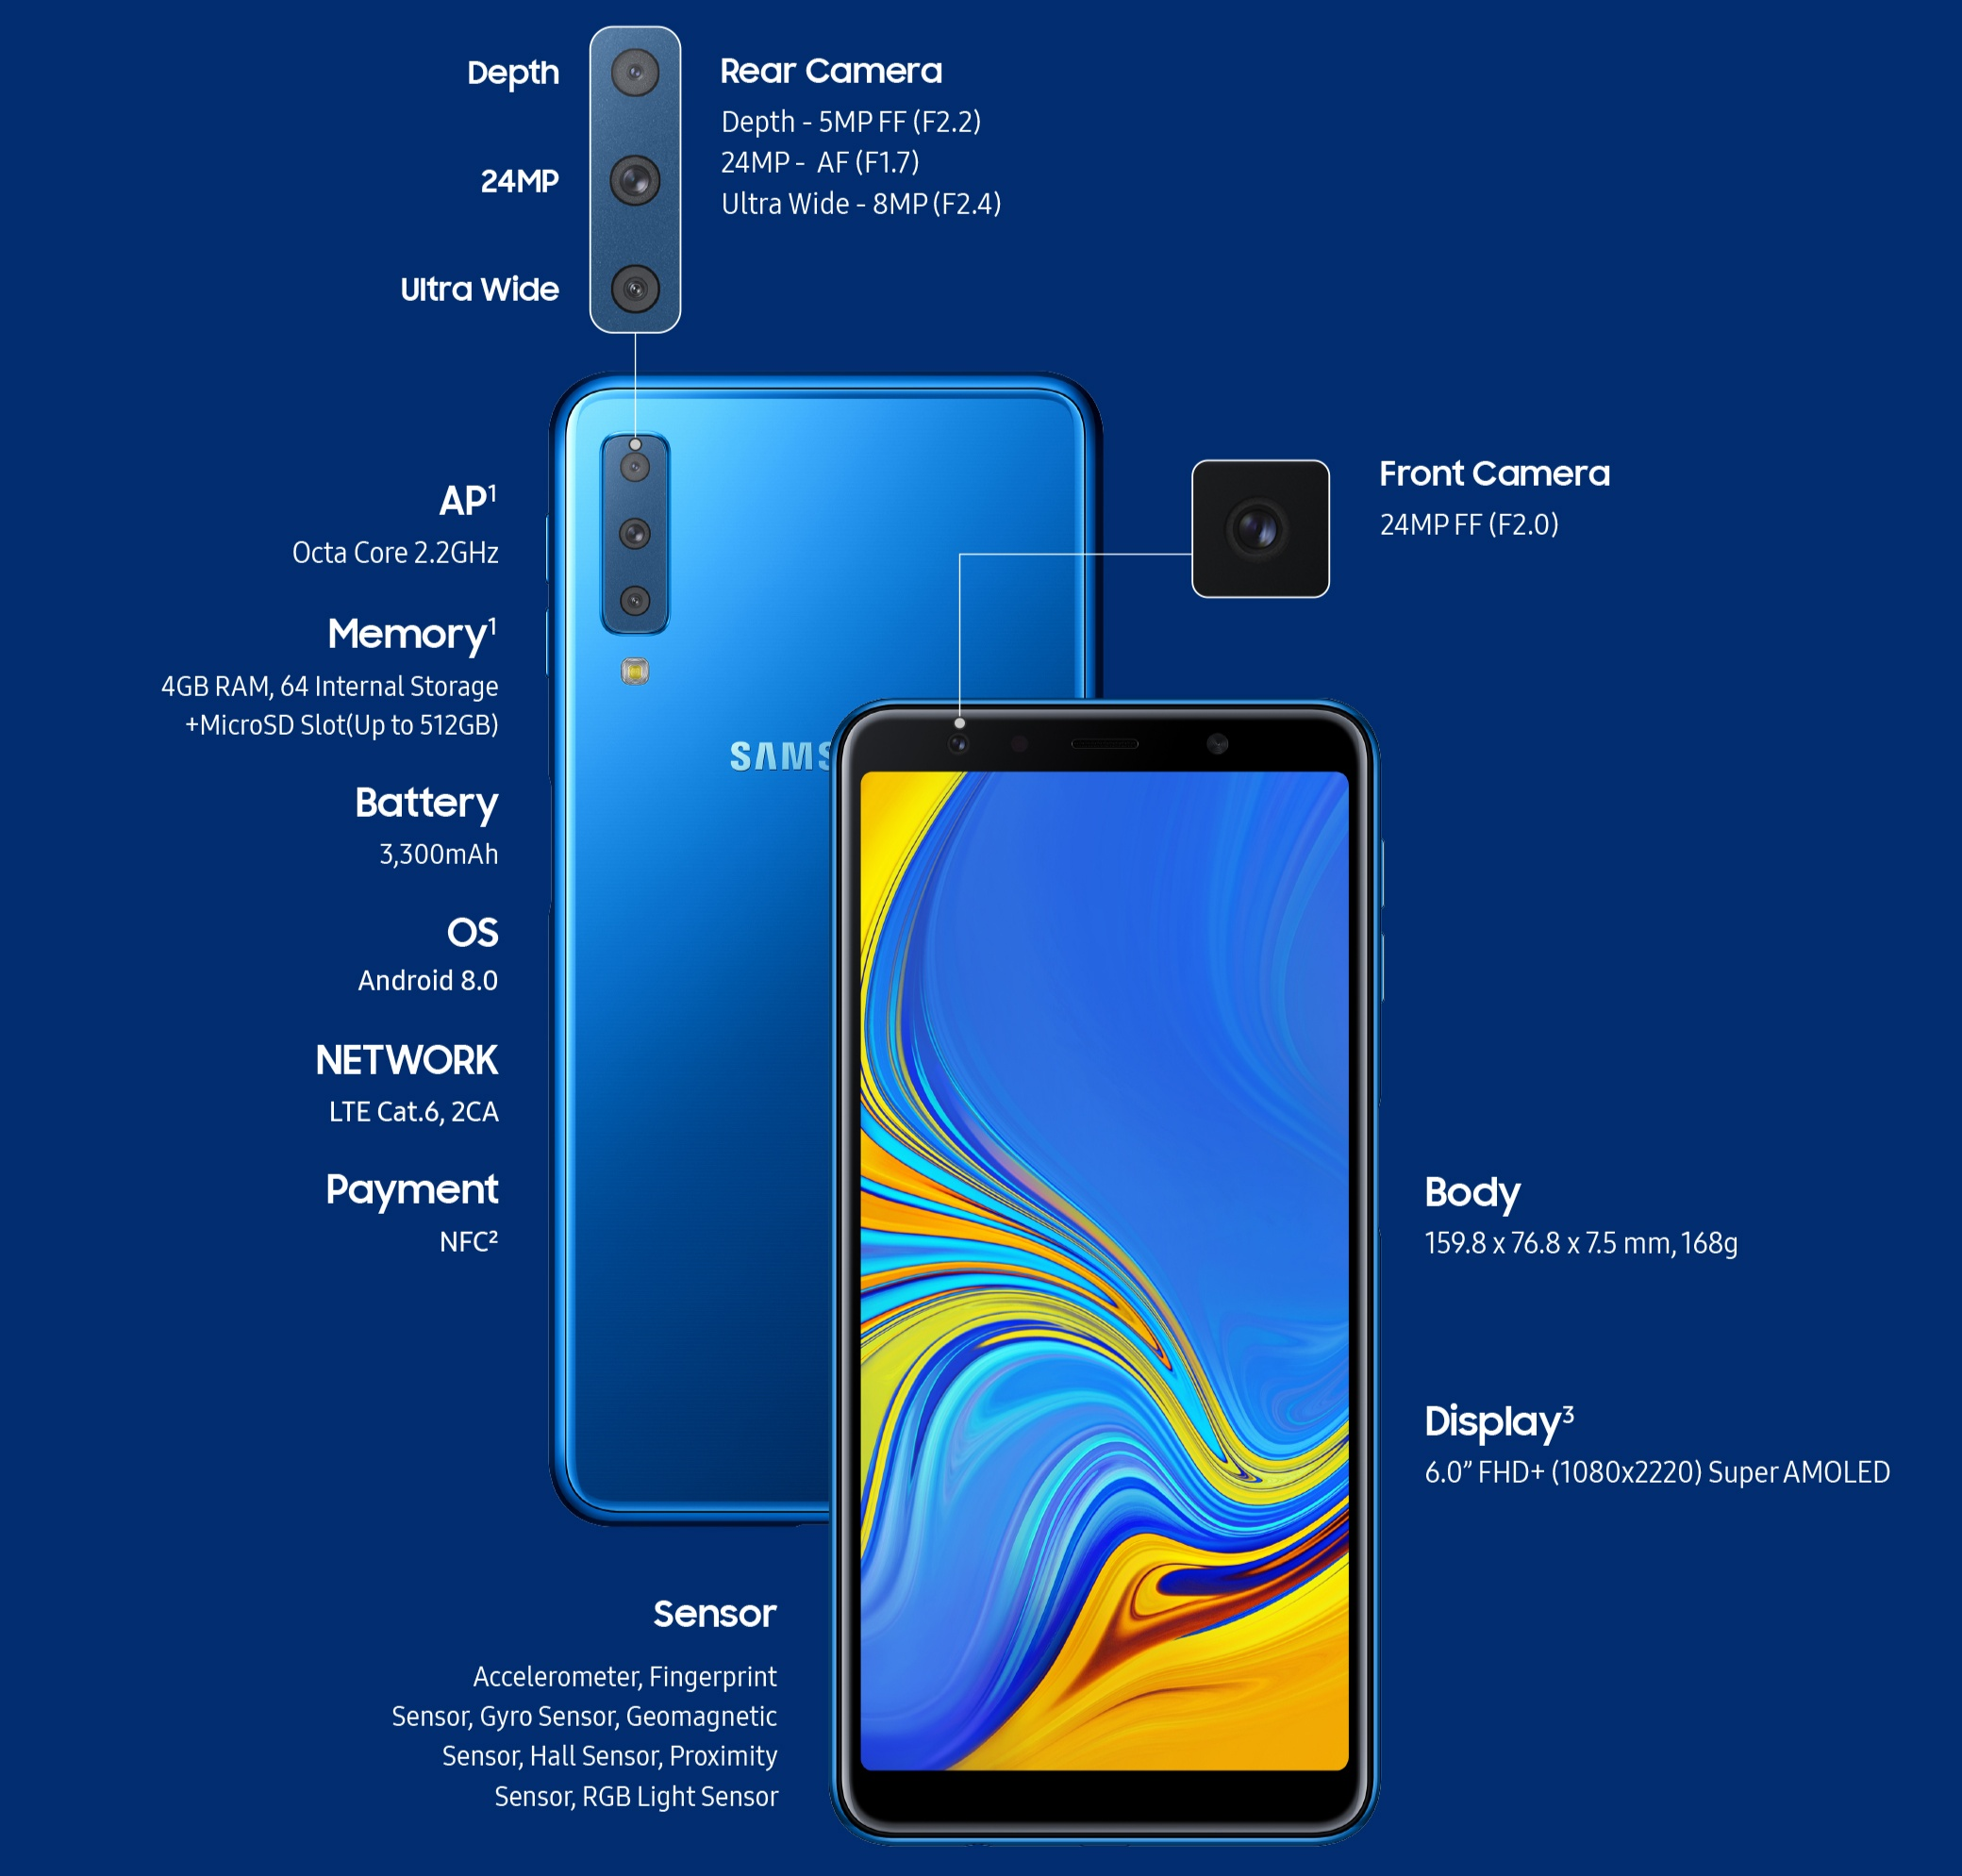 Samsung Galaxy A7 (2018) Specifications